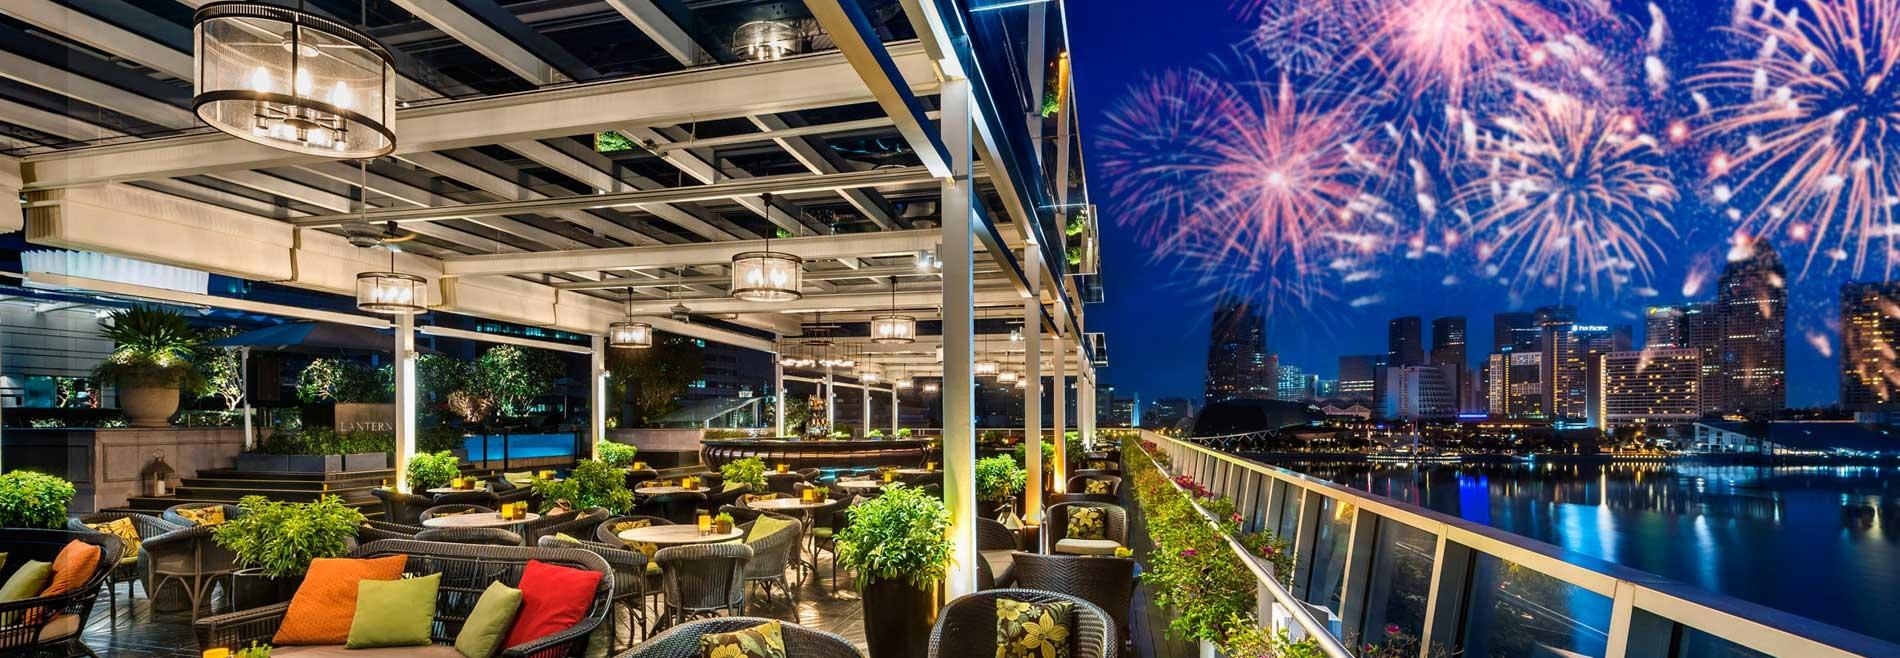 The outdoor area in the Lantern with fireworks